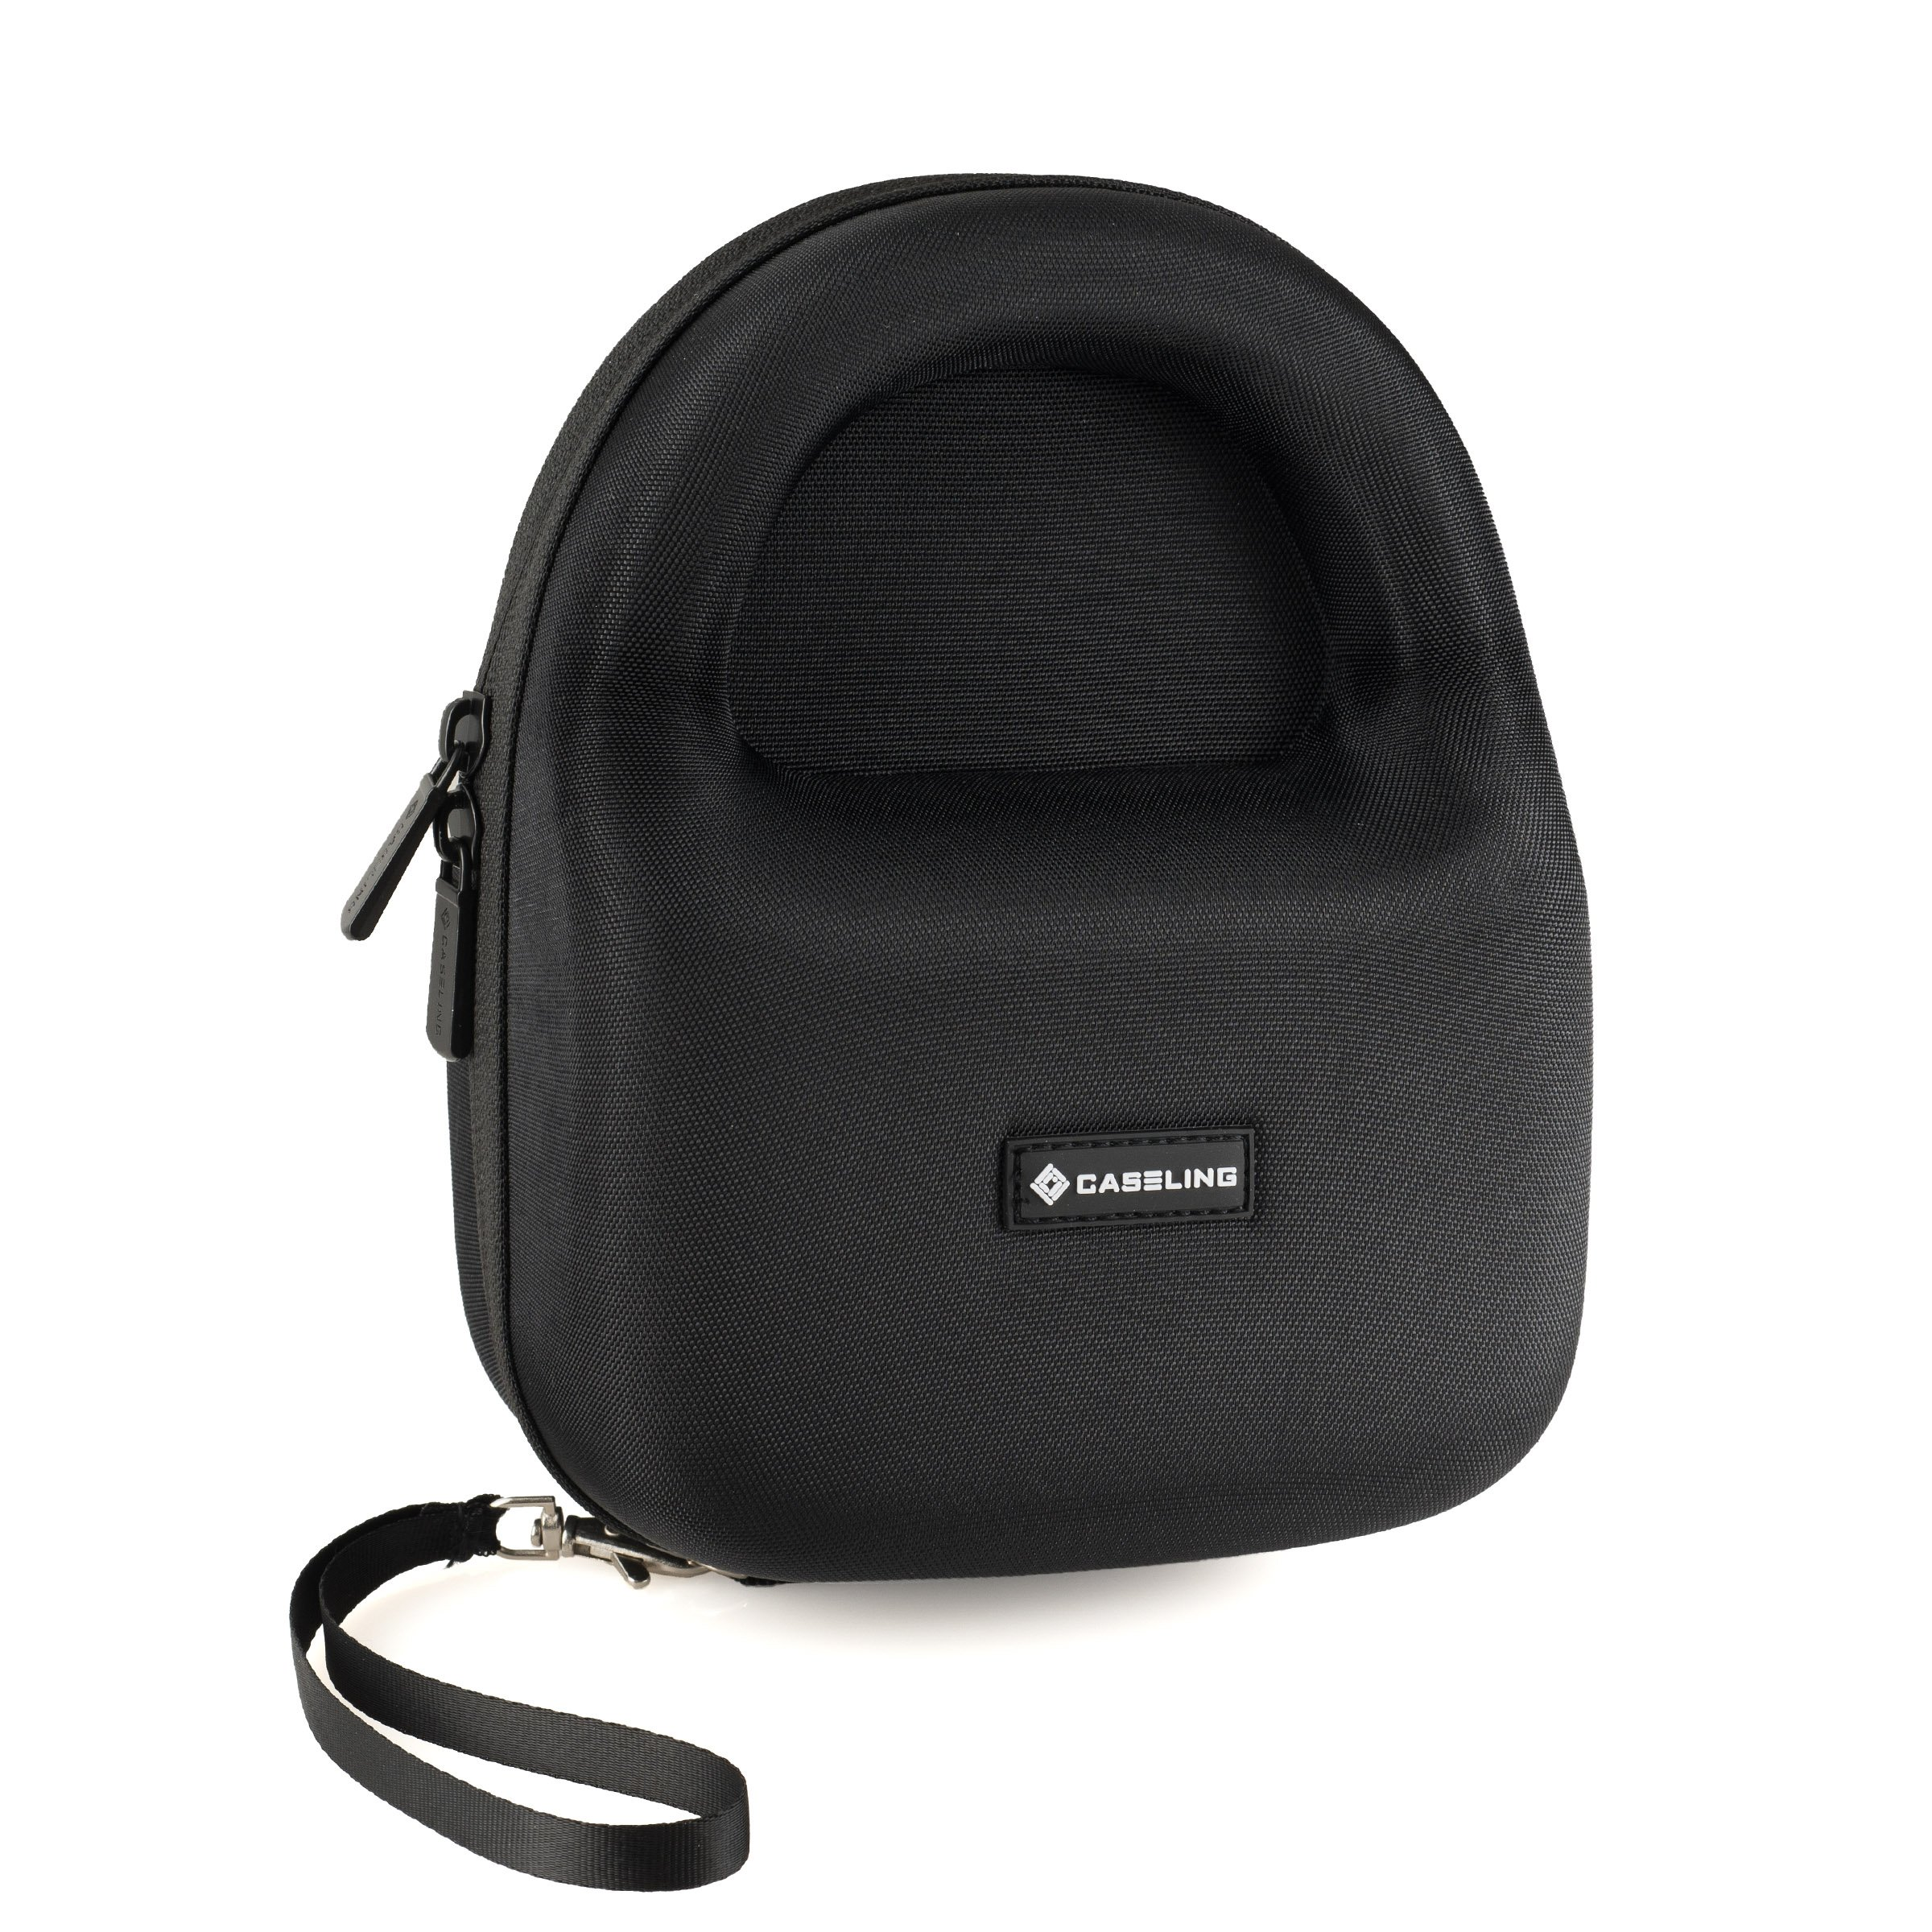 Caseling Hard Case Fits 3M WorkTunes Connect Hearing Protector with Bluetooth Technology | 3M radio headphone | Carrying Storage Travel Bag Protective Pouch